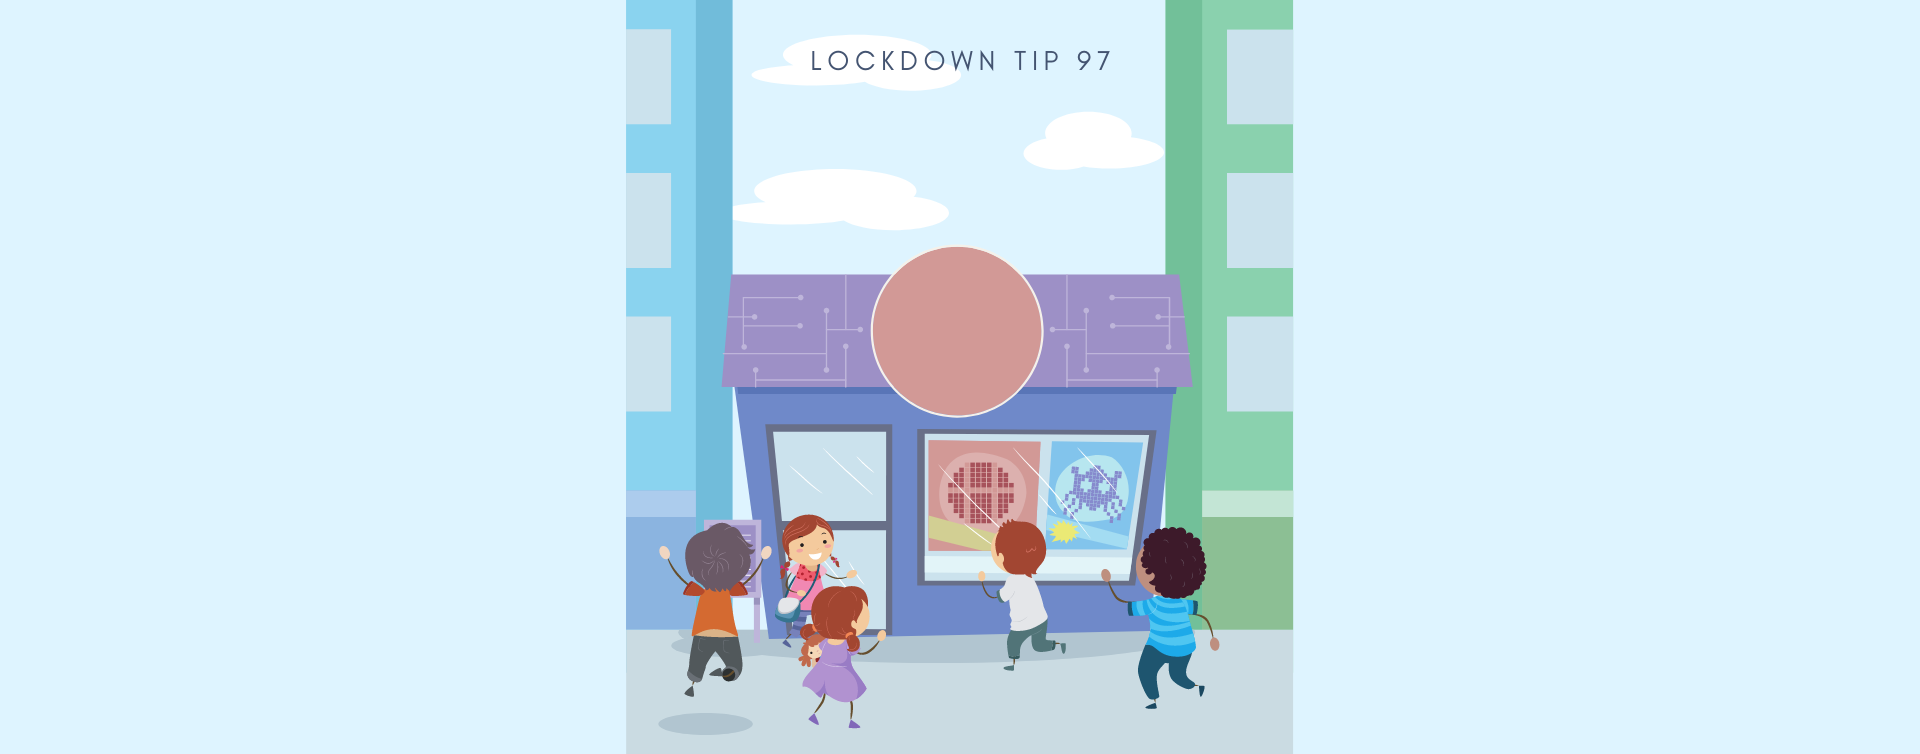 MCSA Lockdown Tip 97